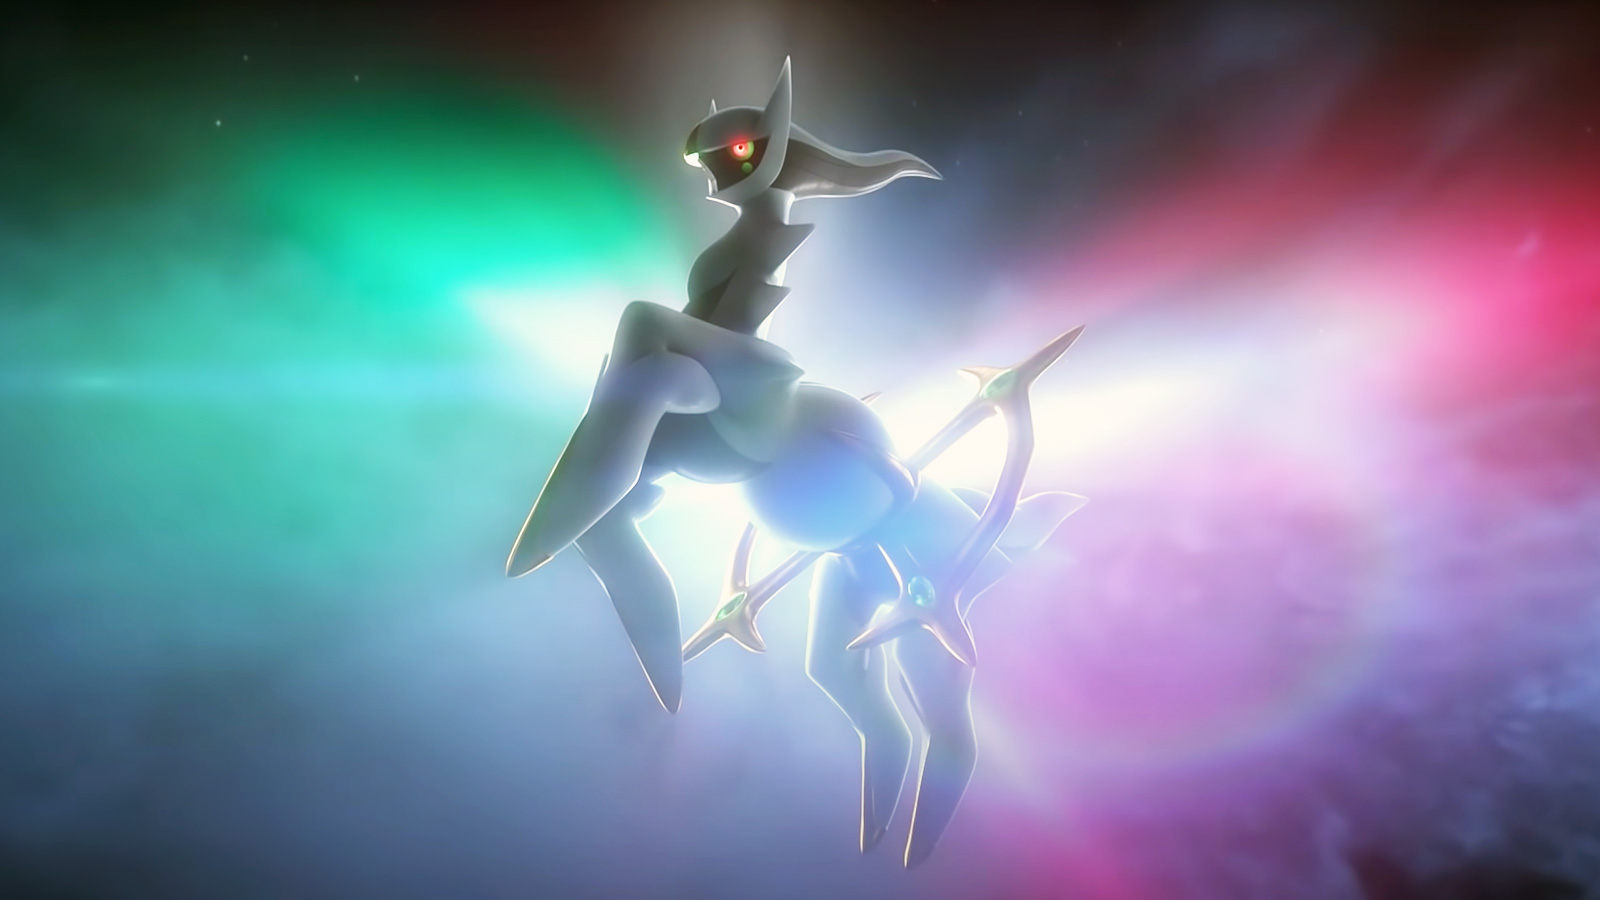 Screenshot of Legendary Pokemon Arceus in Pokemo Legends trailer.